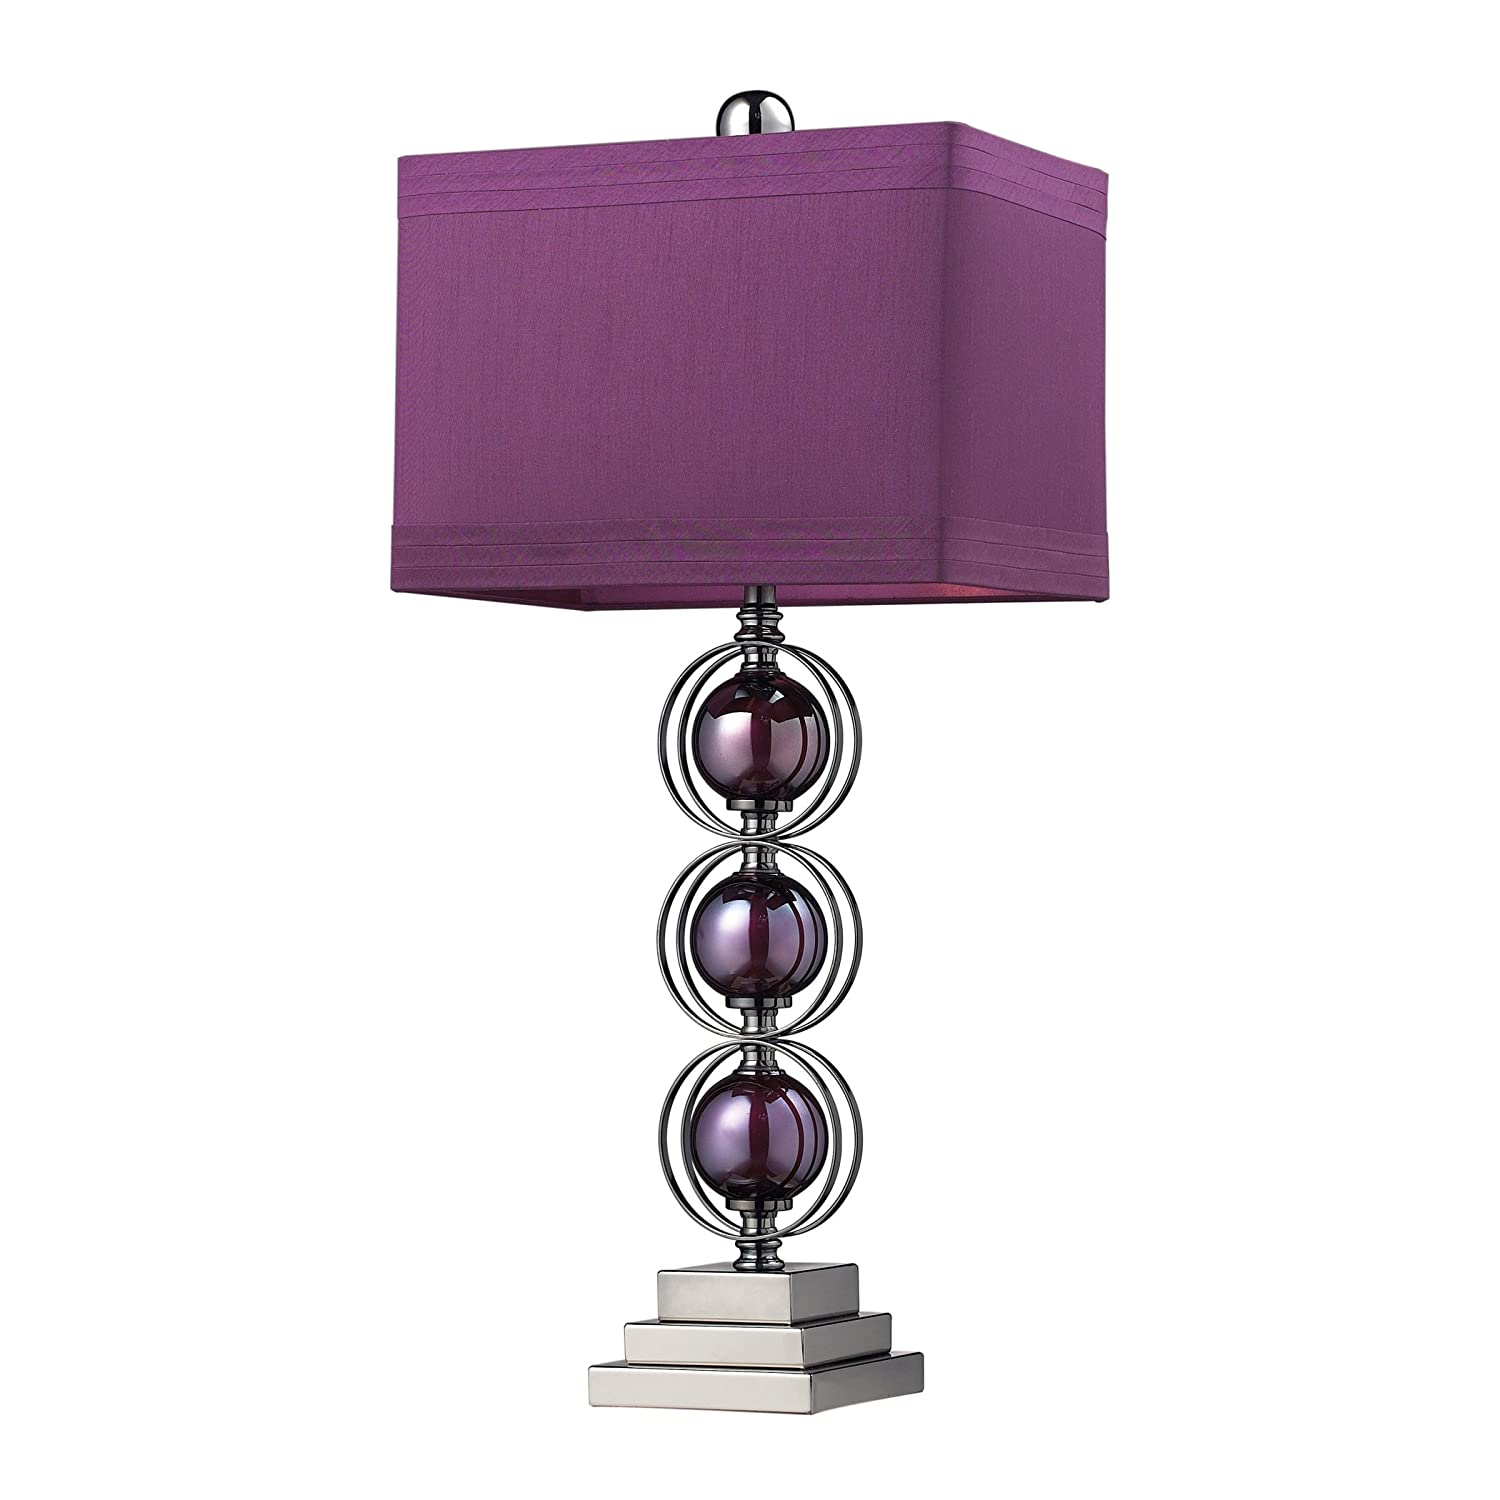 Dimond lighting d2232 alva table lamp purple and black nickel dimond lighting d2232 alva table lamp purple and black nickel finish purple bath rug amazon geotapseo Gallery